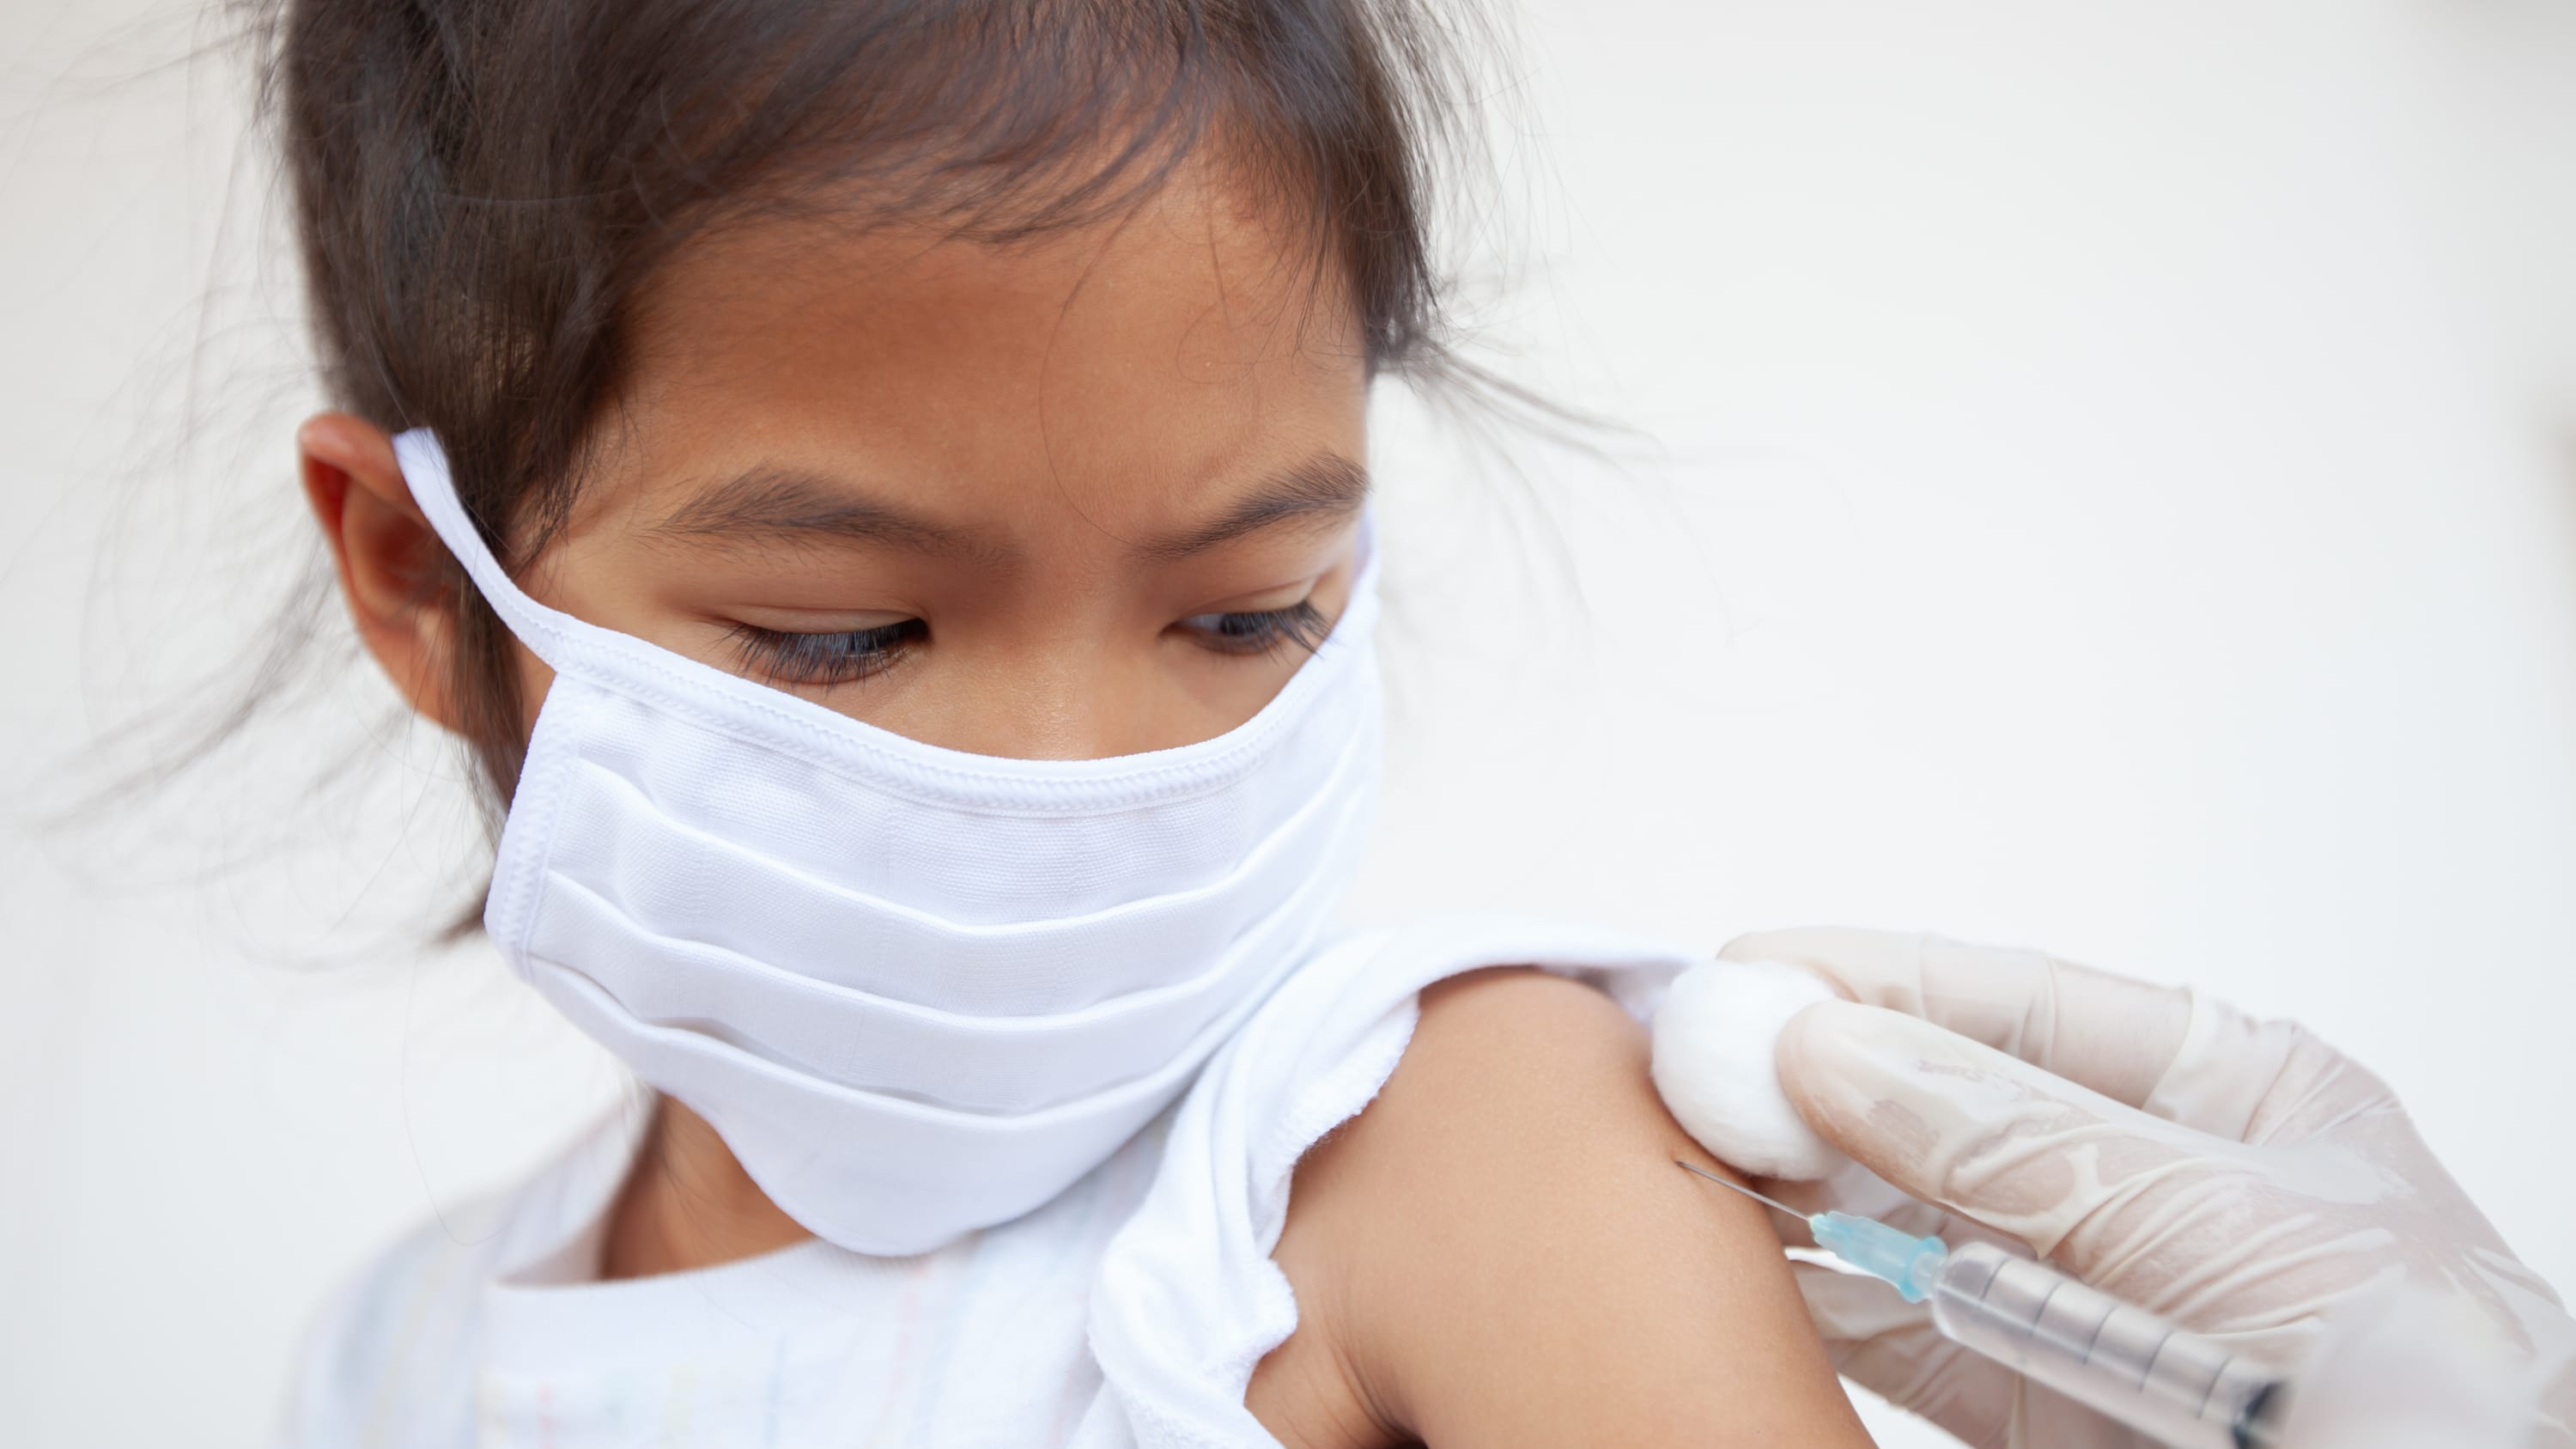 girl receiving a vaccine, potentially for COVID-19